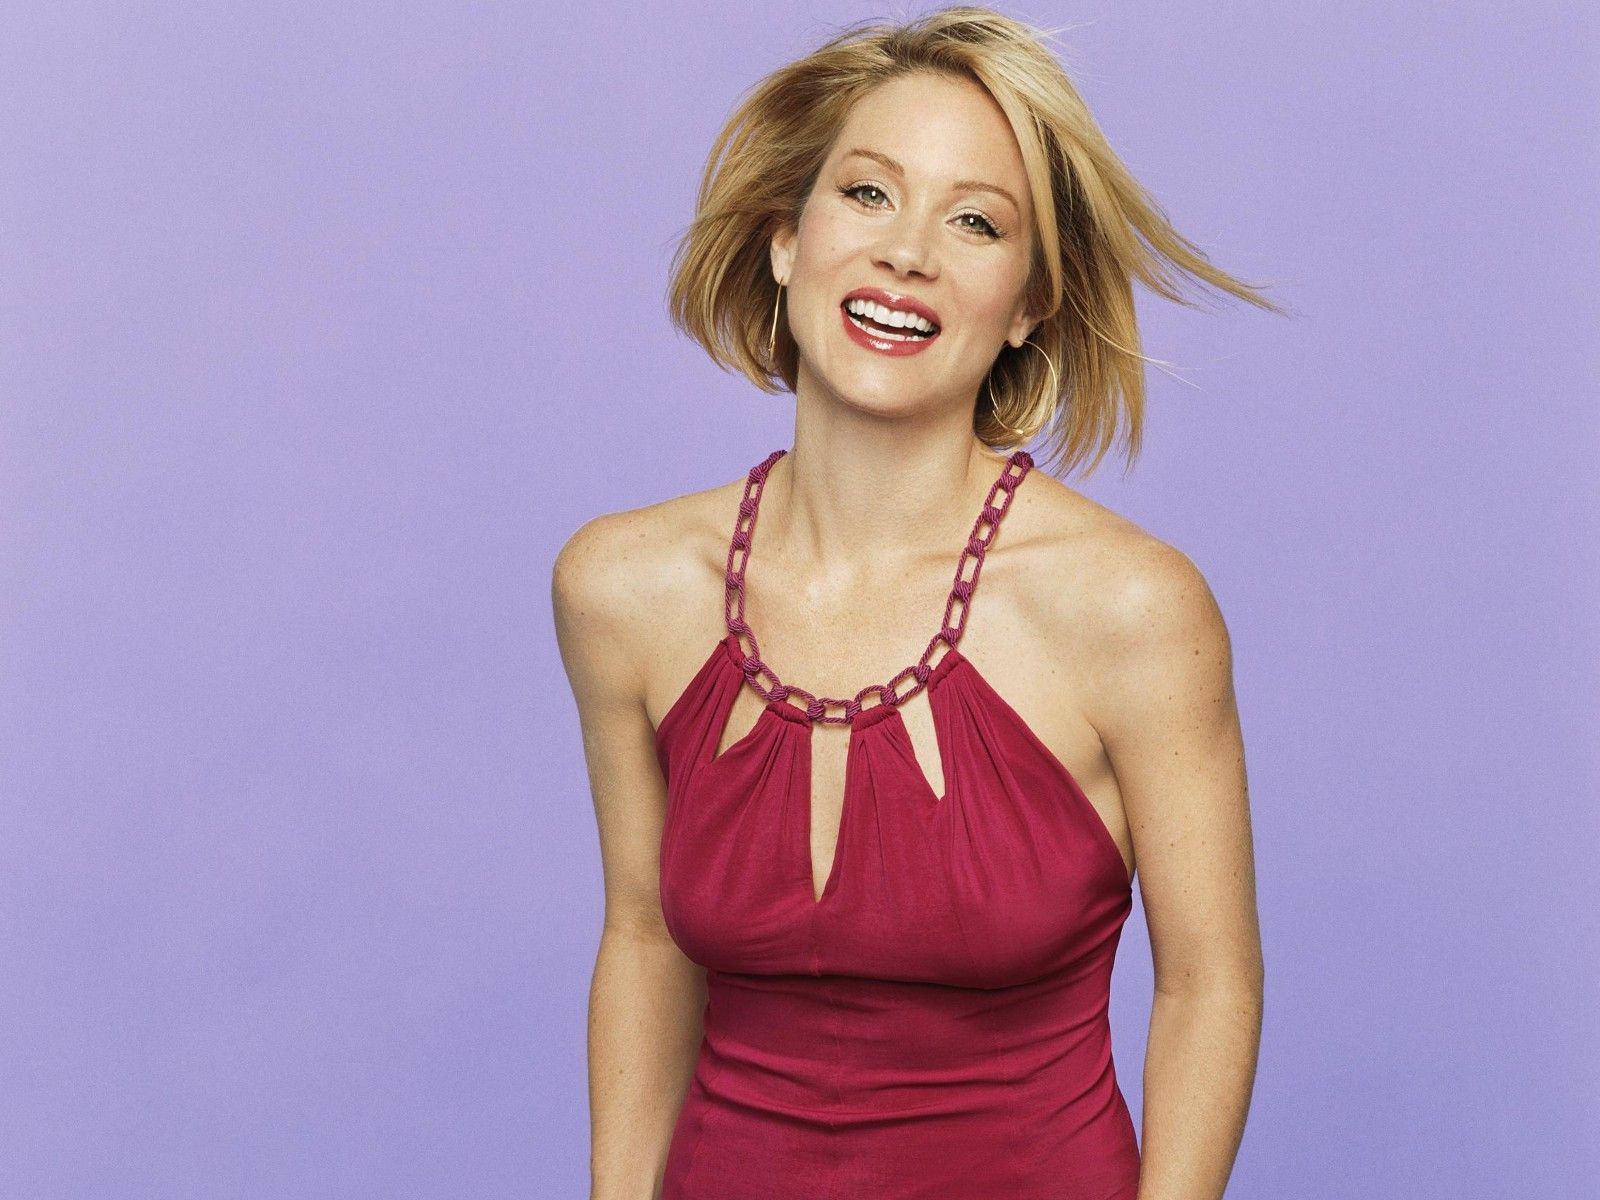 christina applegate wallpapers high resolution and quality download